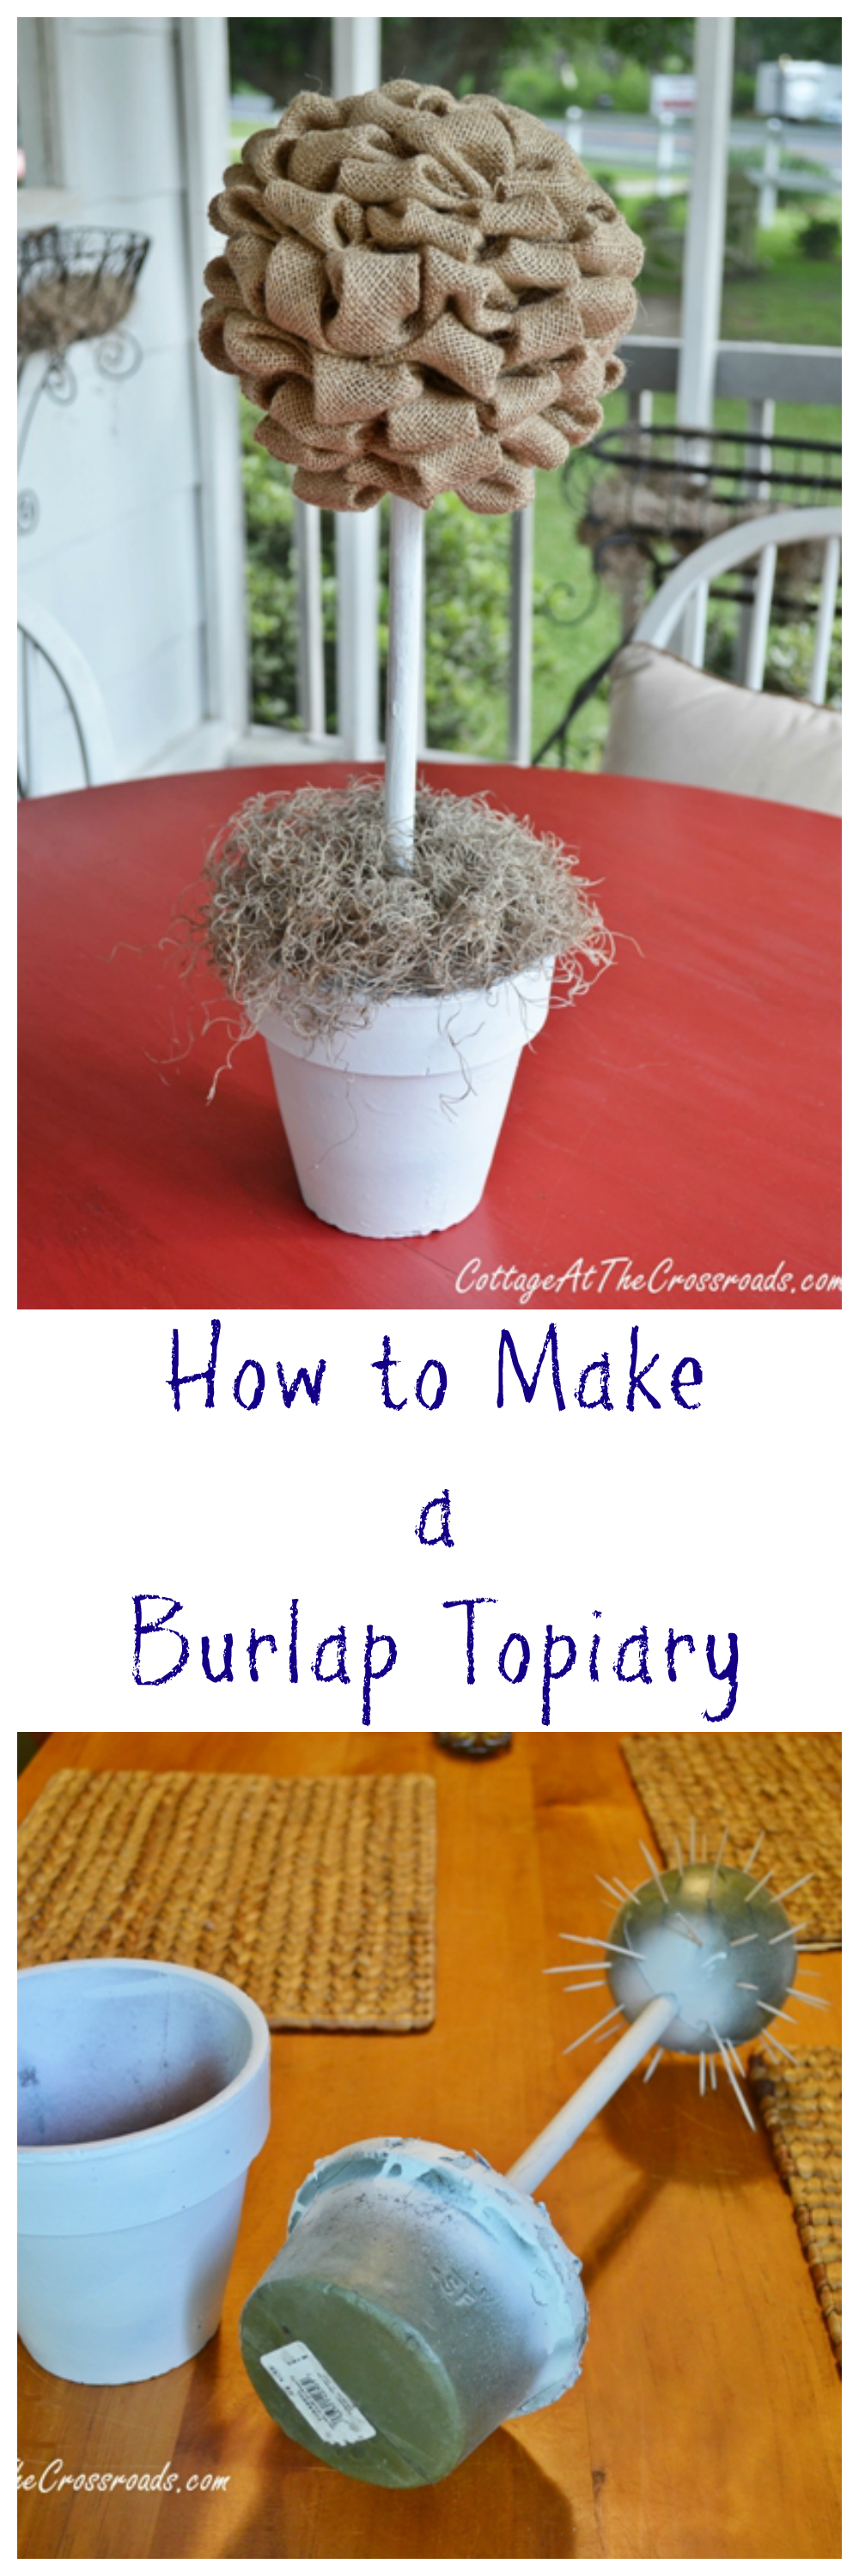 An easy-to-make burlap topiary - Could be modified with Red/Green colors for Christmas decor...